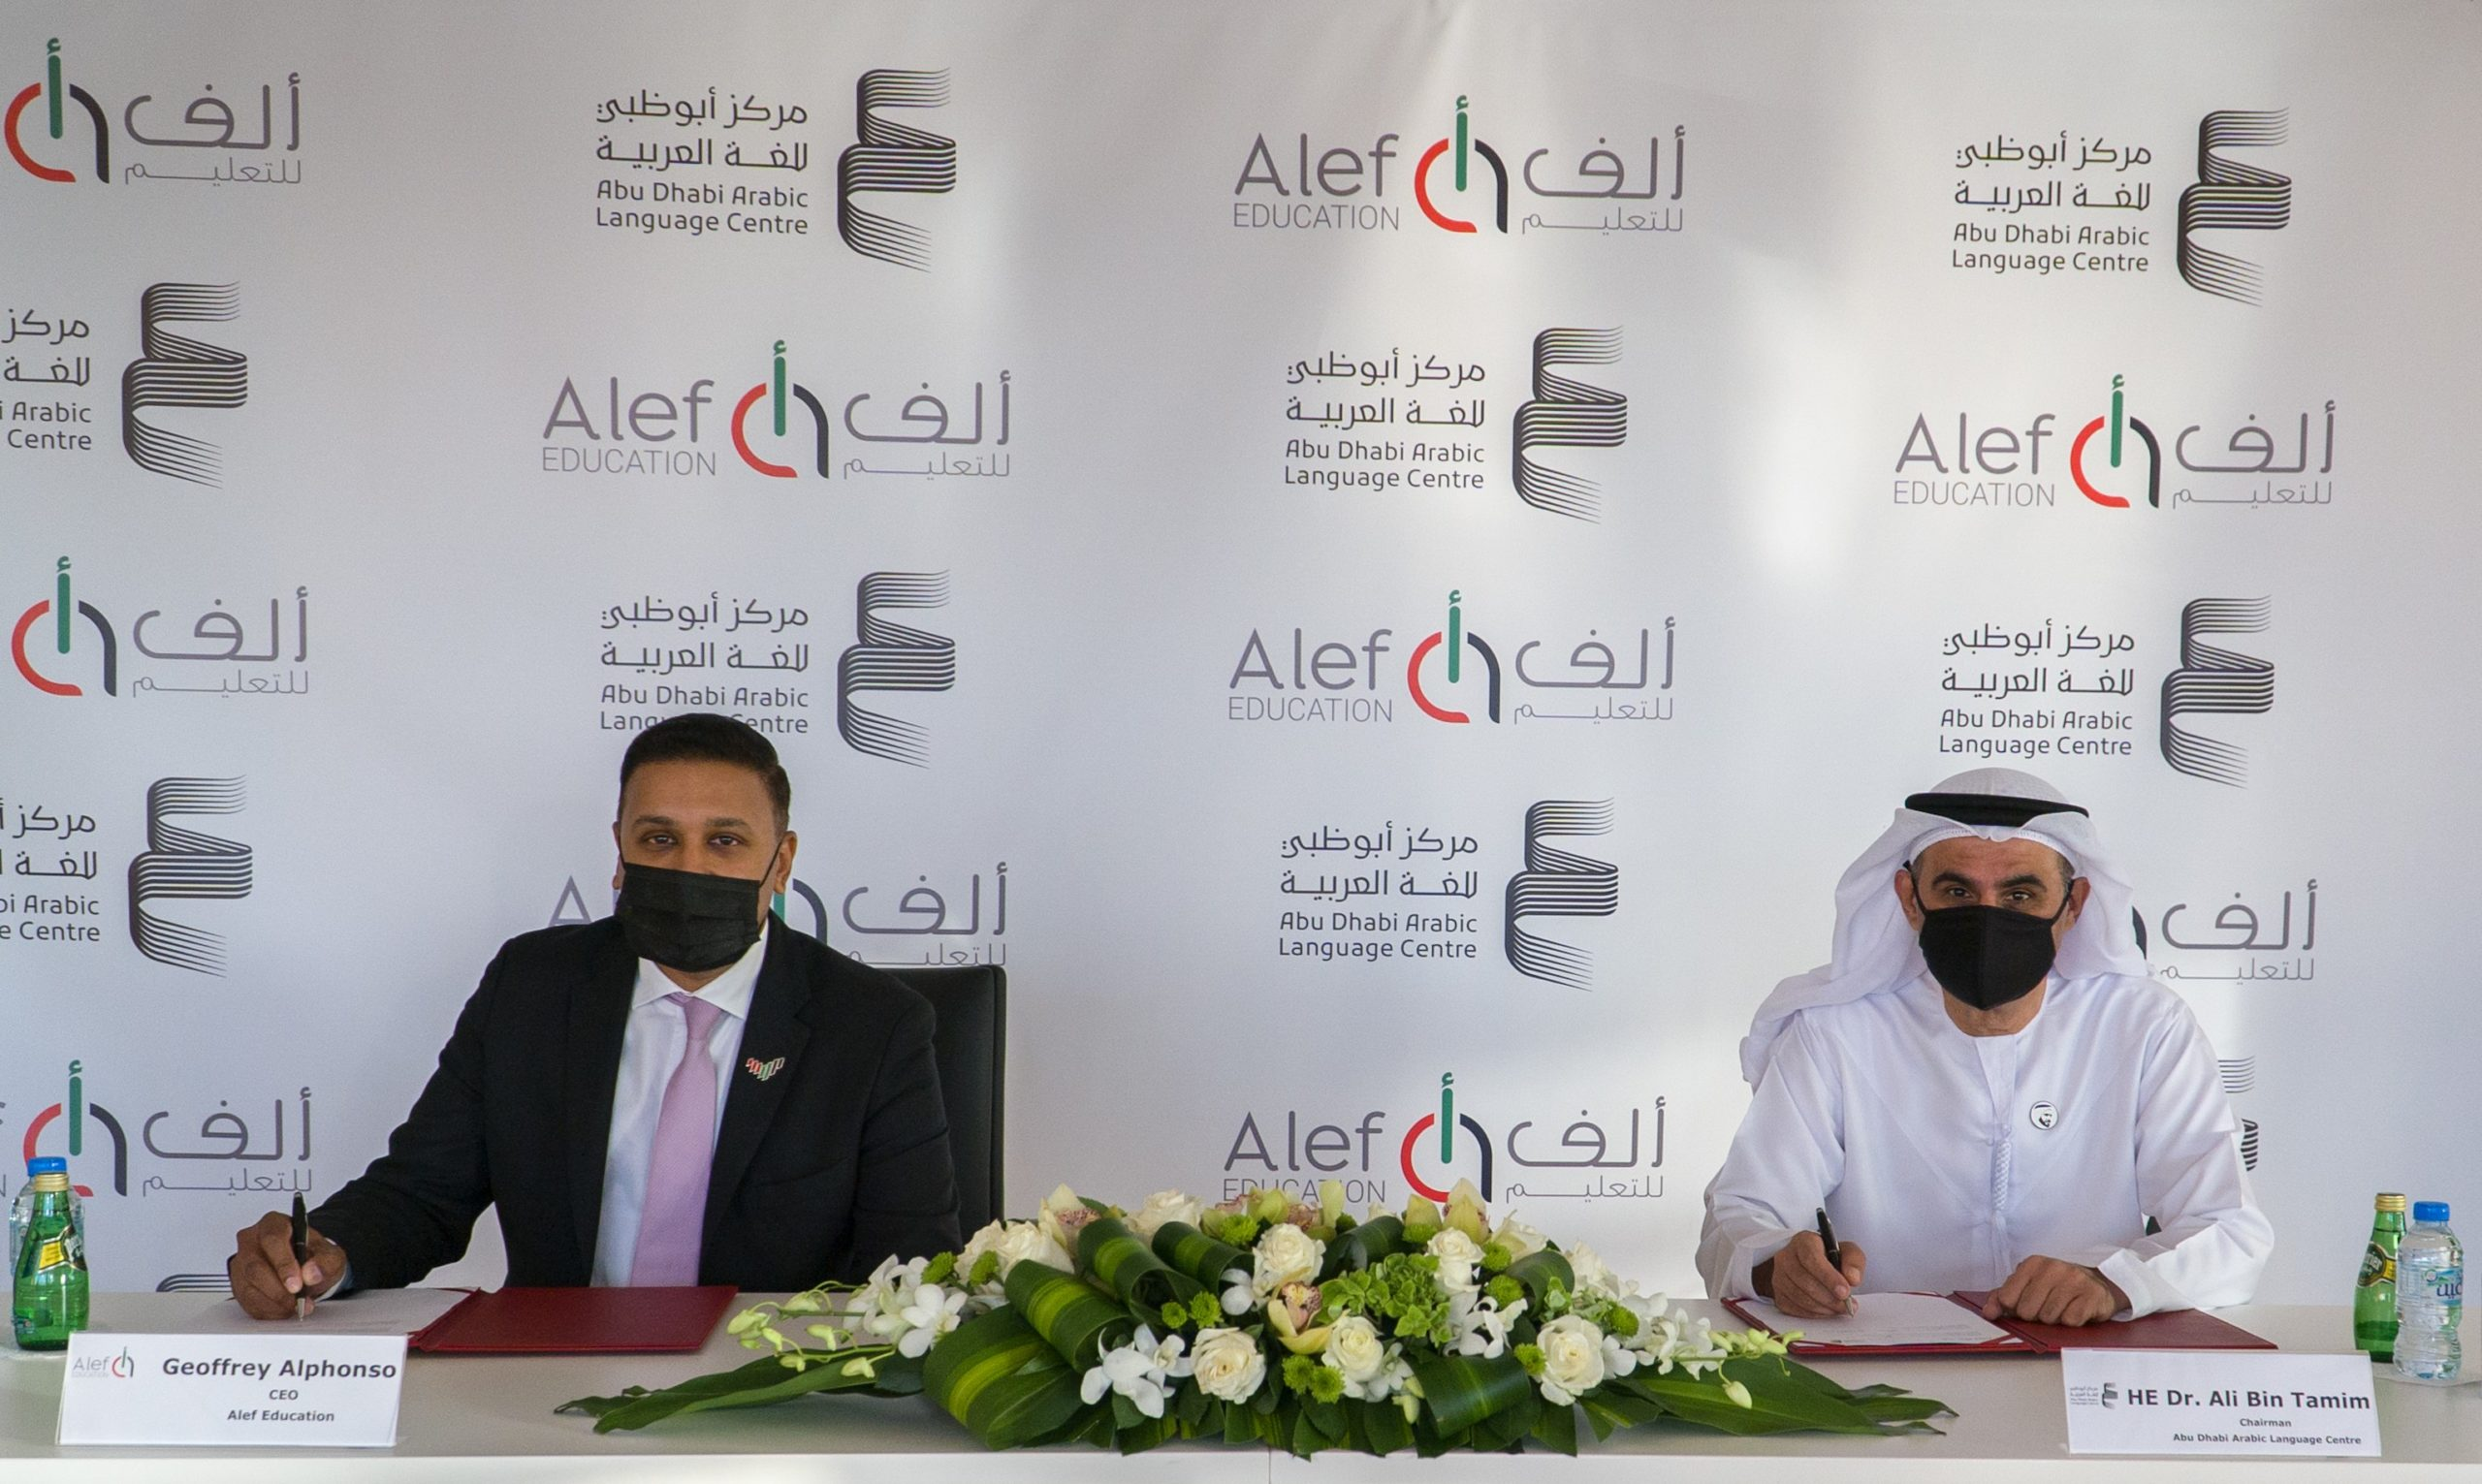 Arabic Language Centre and Alef Education sign memorandum of understanding on supporting Arabic language education